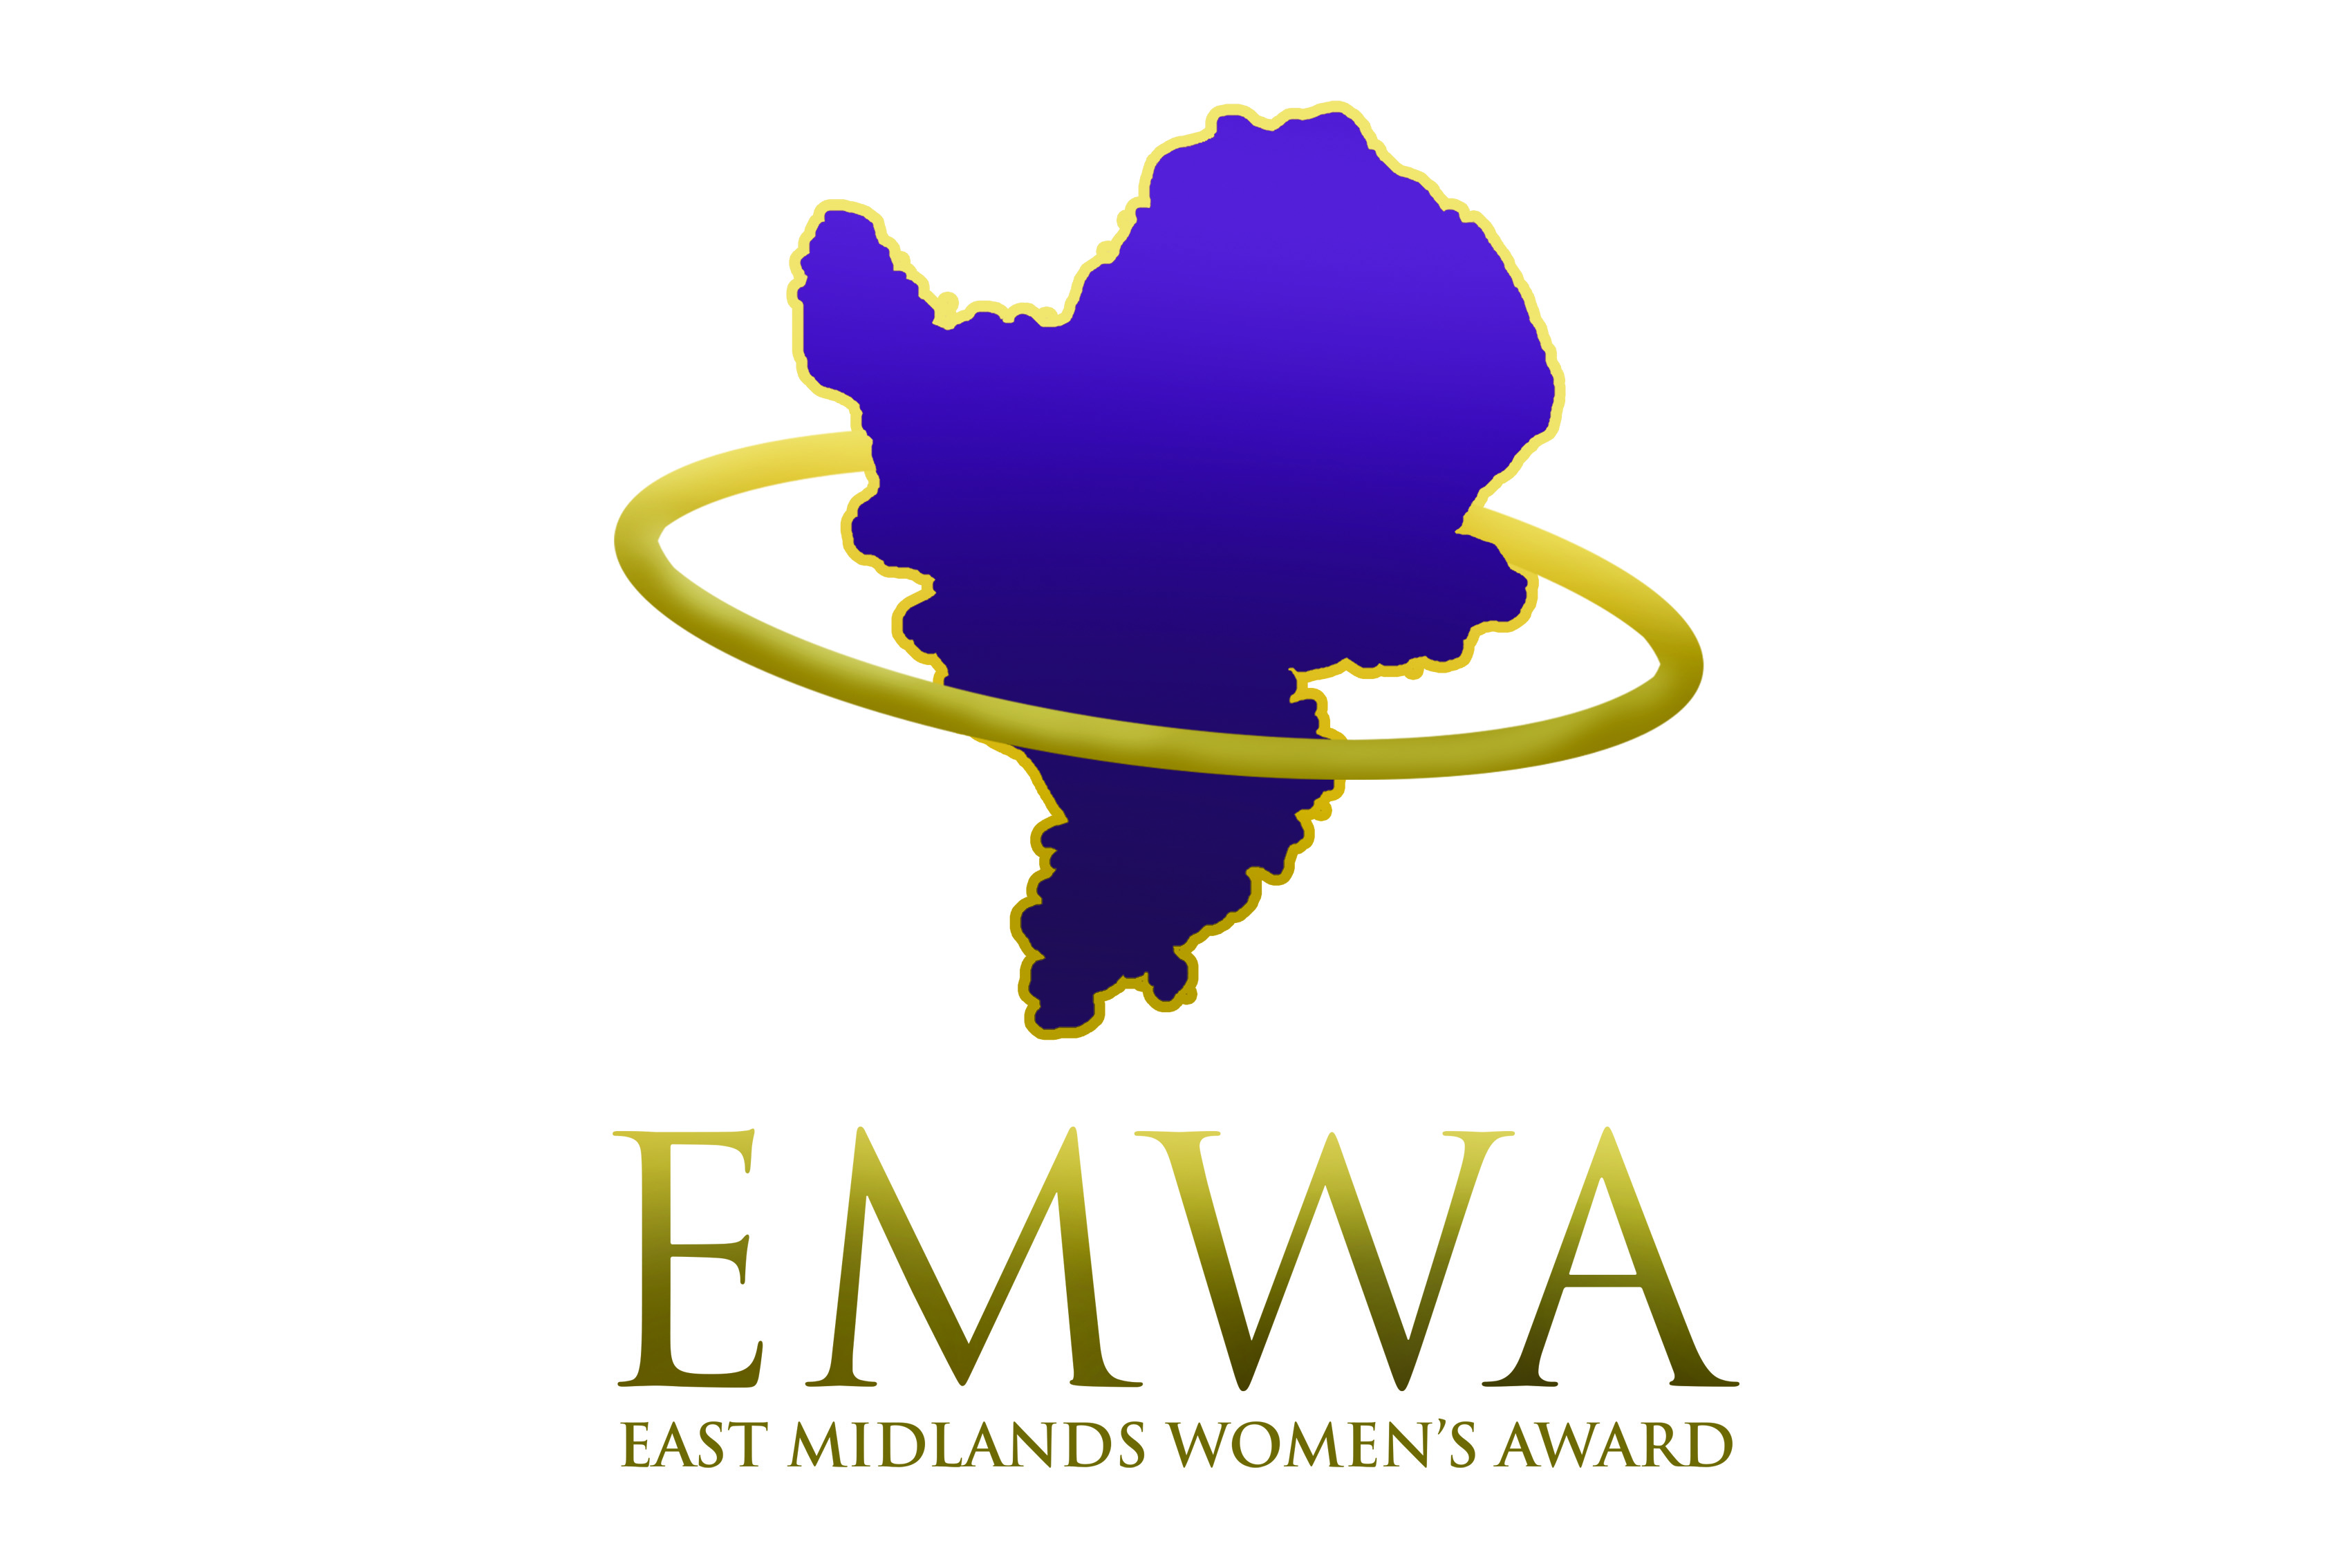 East Midlands Womens Awards